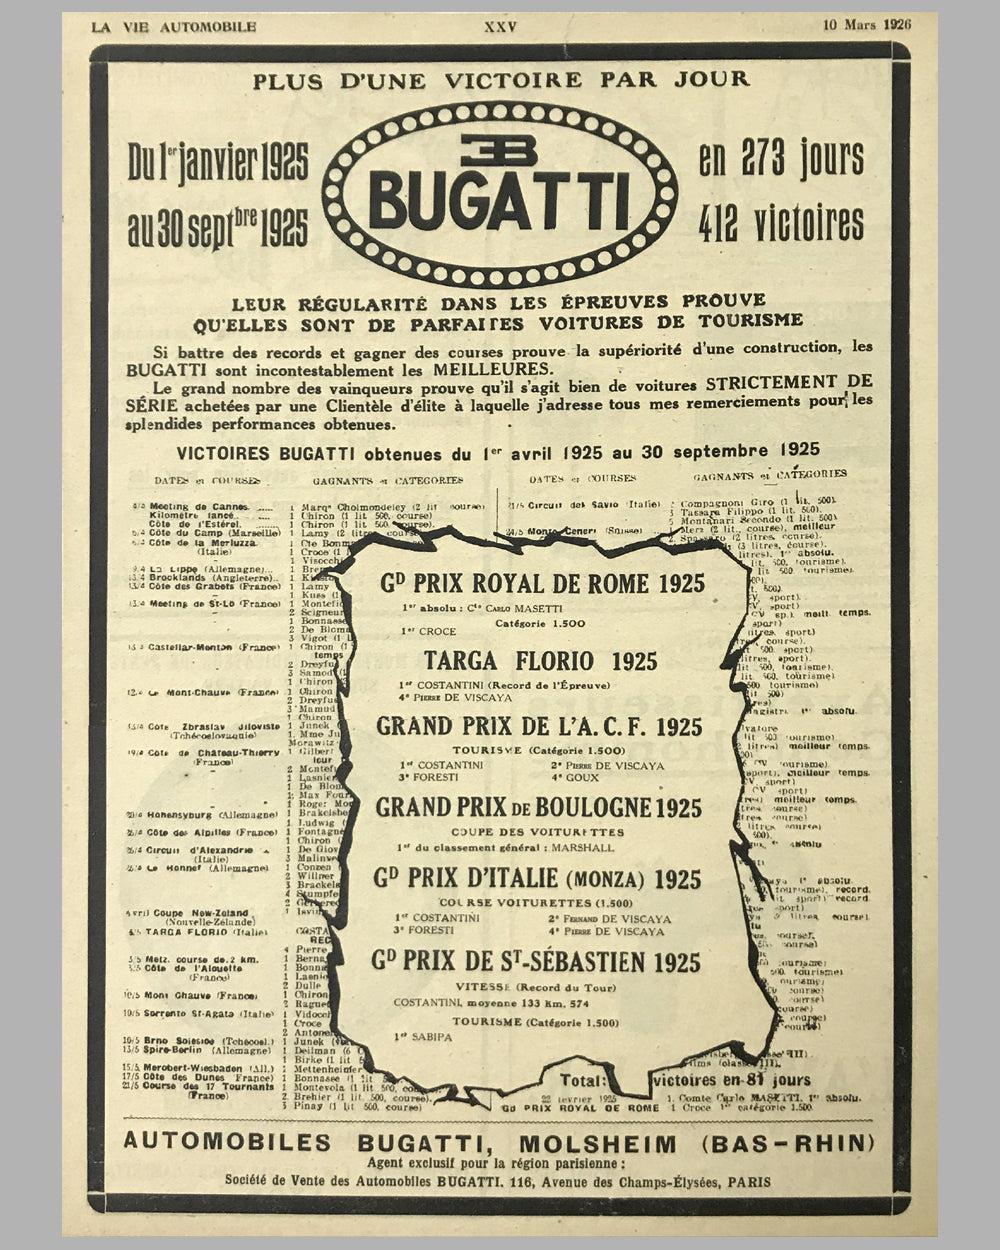 1926 - Bugatti original magazine ad, from March 10 issue of La Vie Automobile